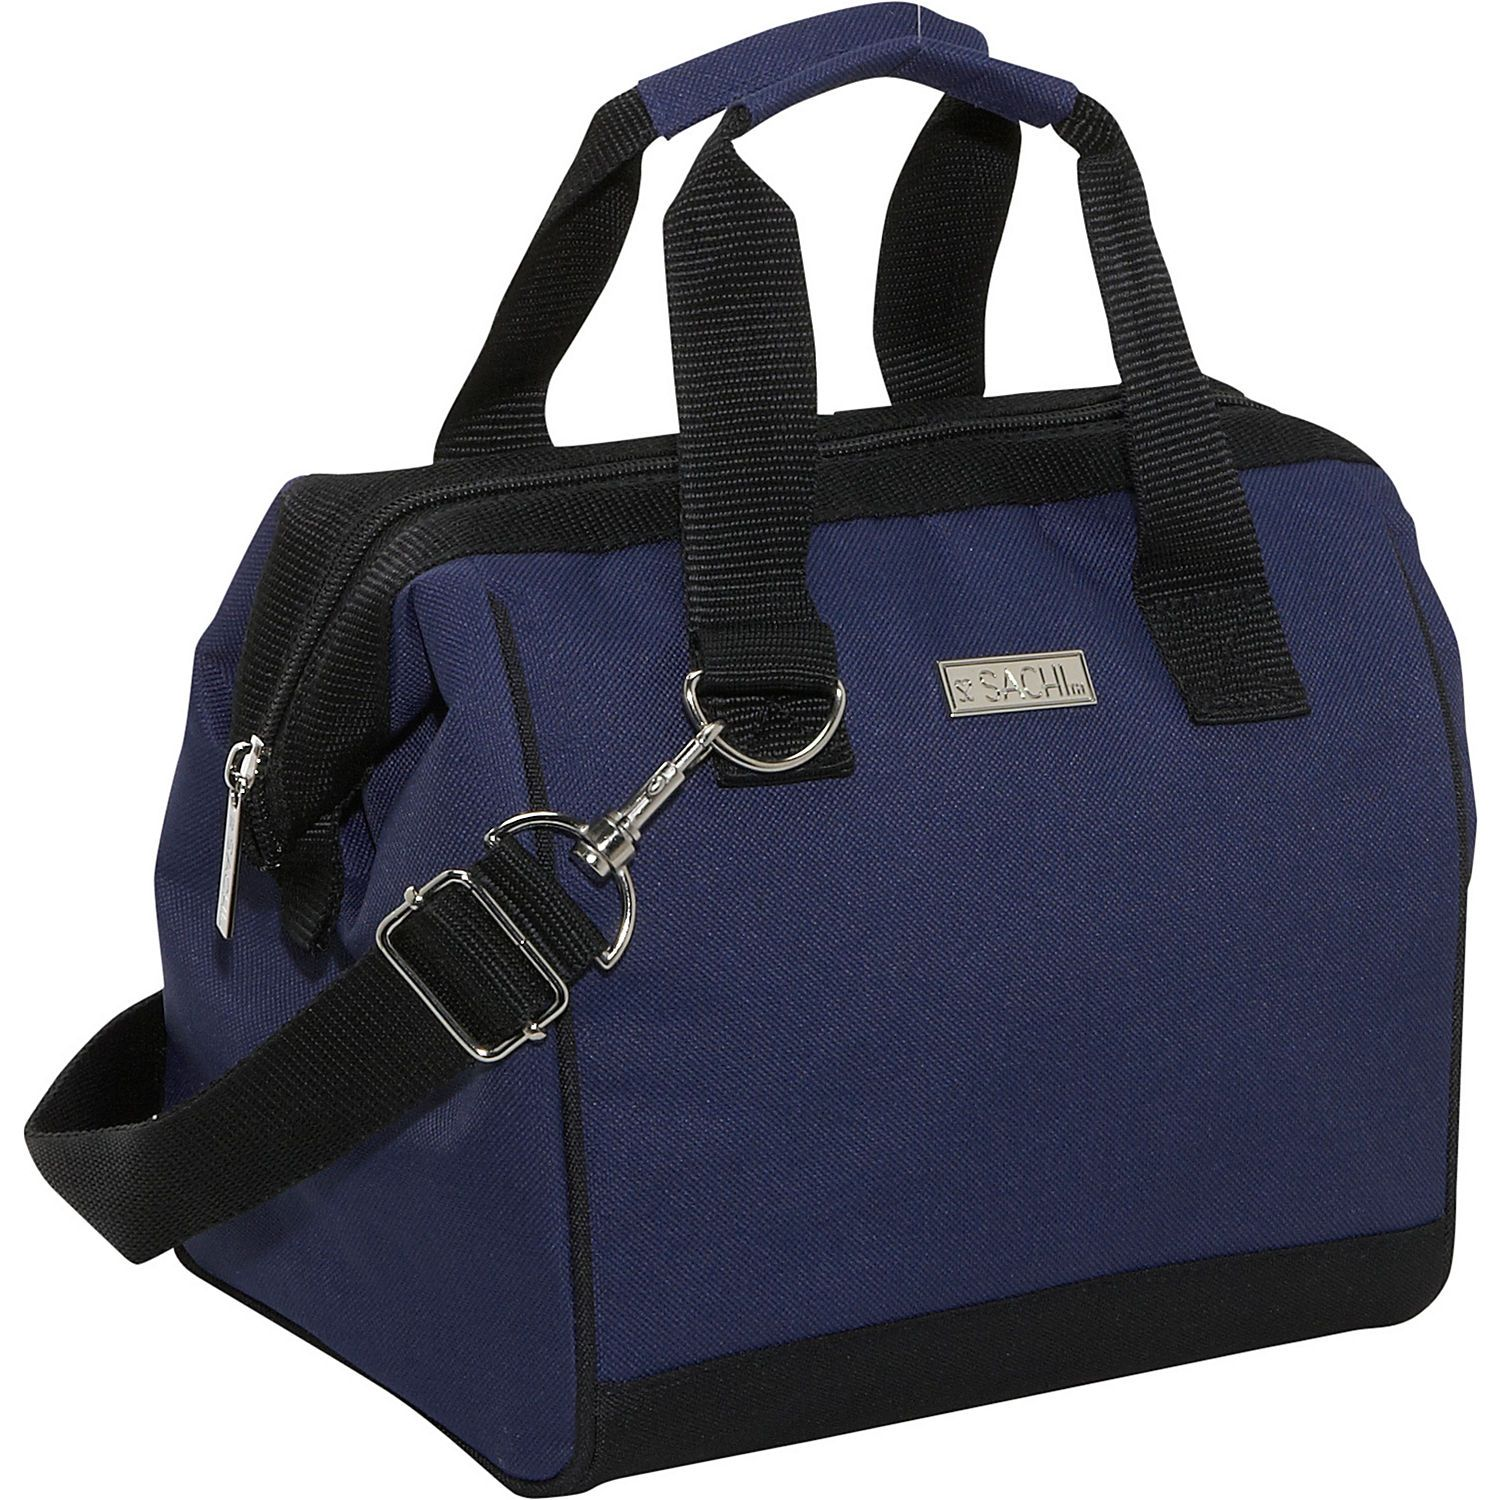 Designer Insulated Lunch Bags